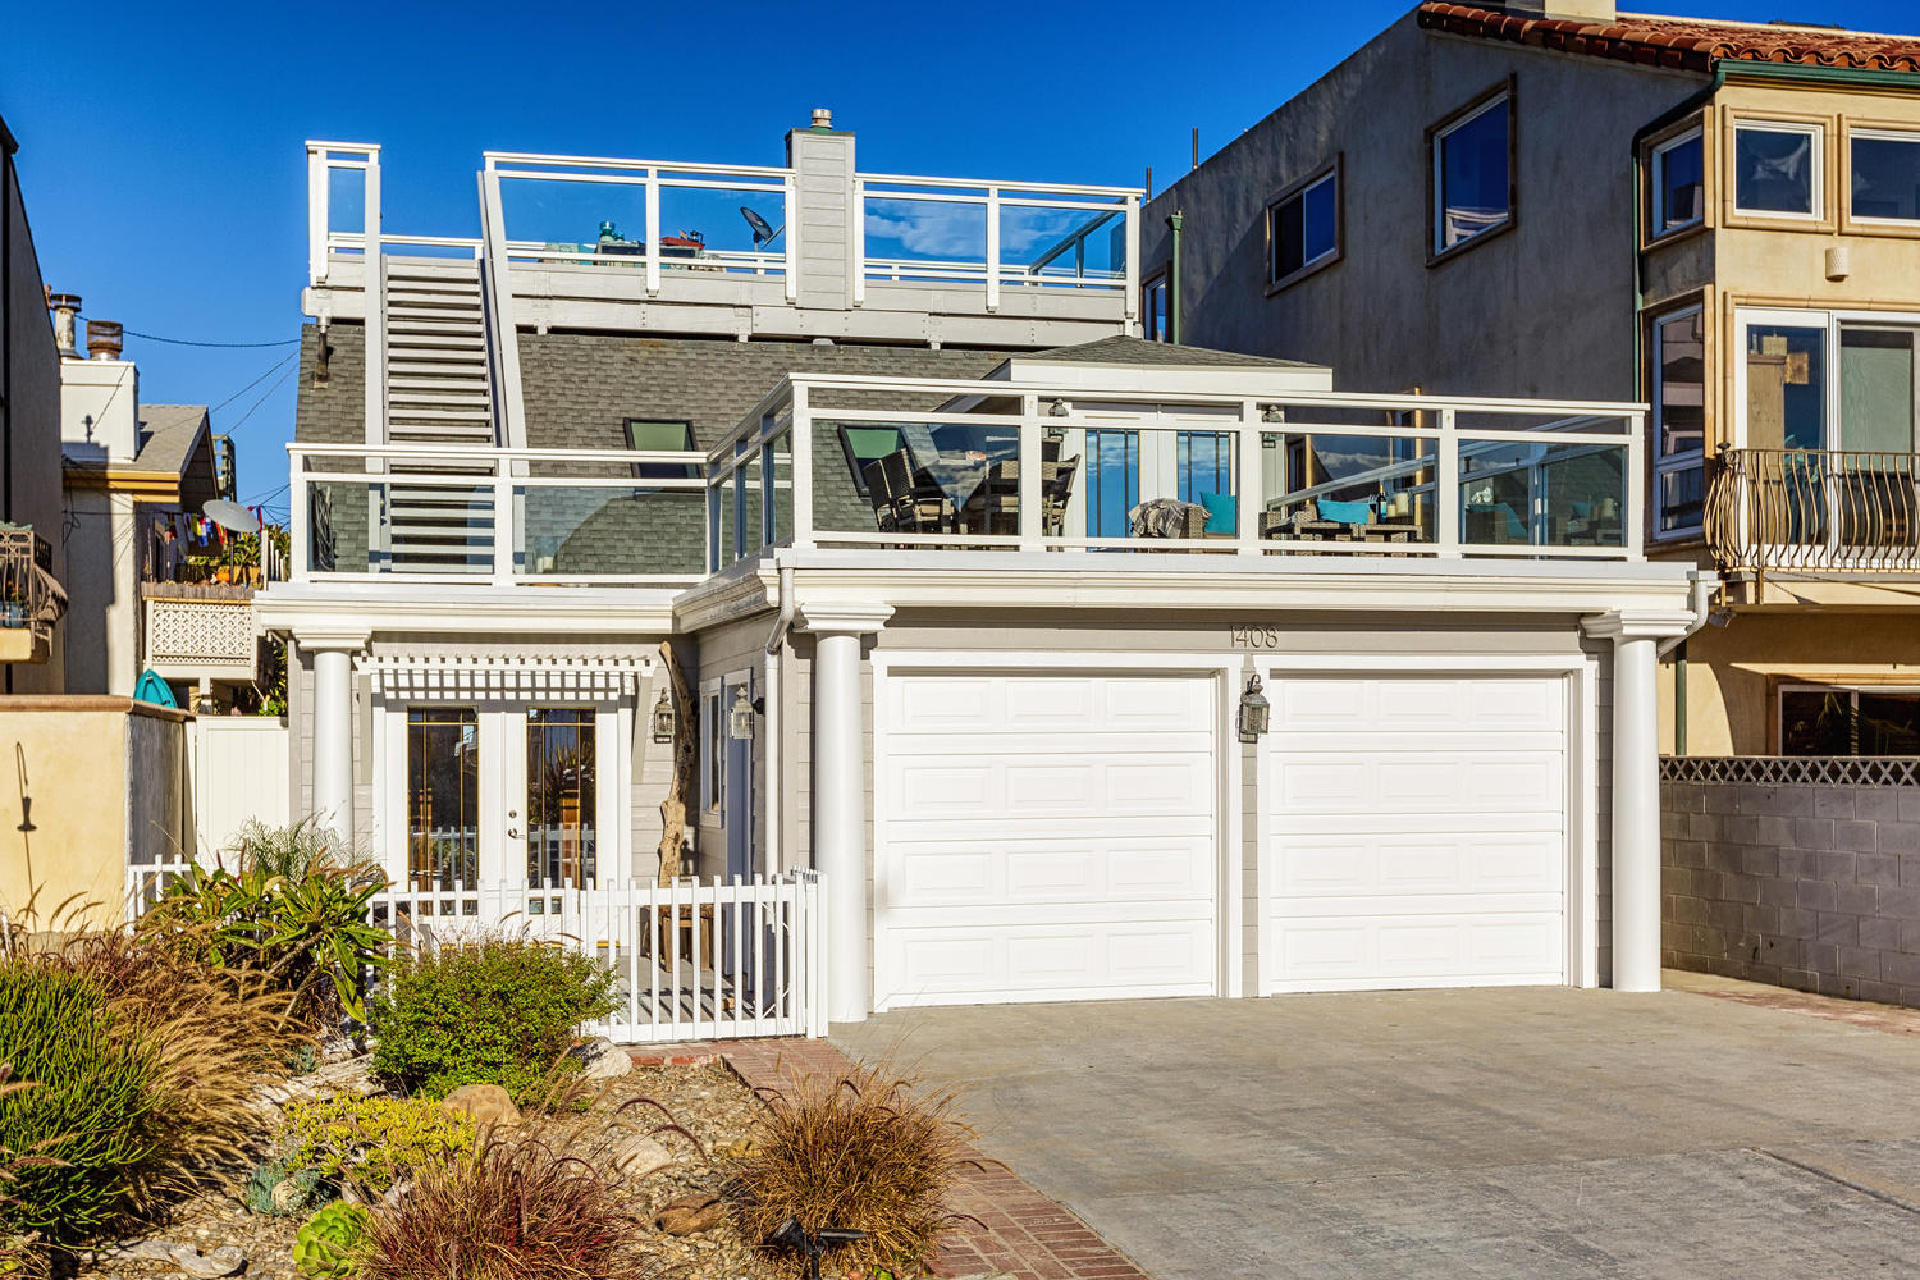 https://addressrealestate.com/media/images/blogs/38/2/b_1-1408-ocean-dr-oxnard-ca-93035-mls-size-001-13-front-of-home-1500x1000-72dpi.jpg